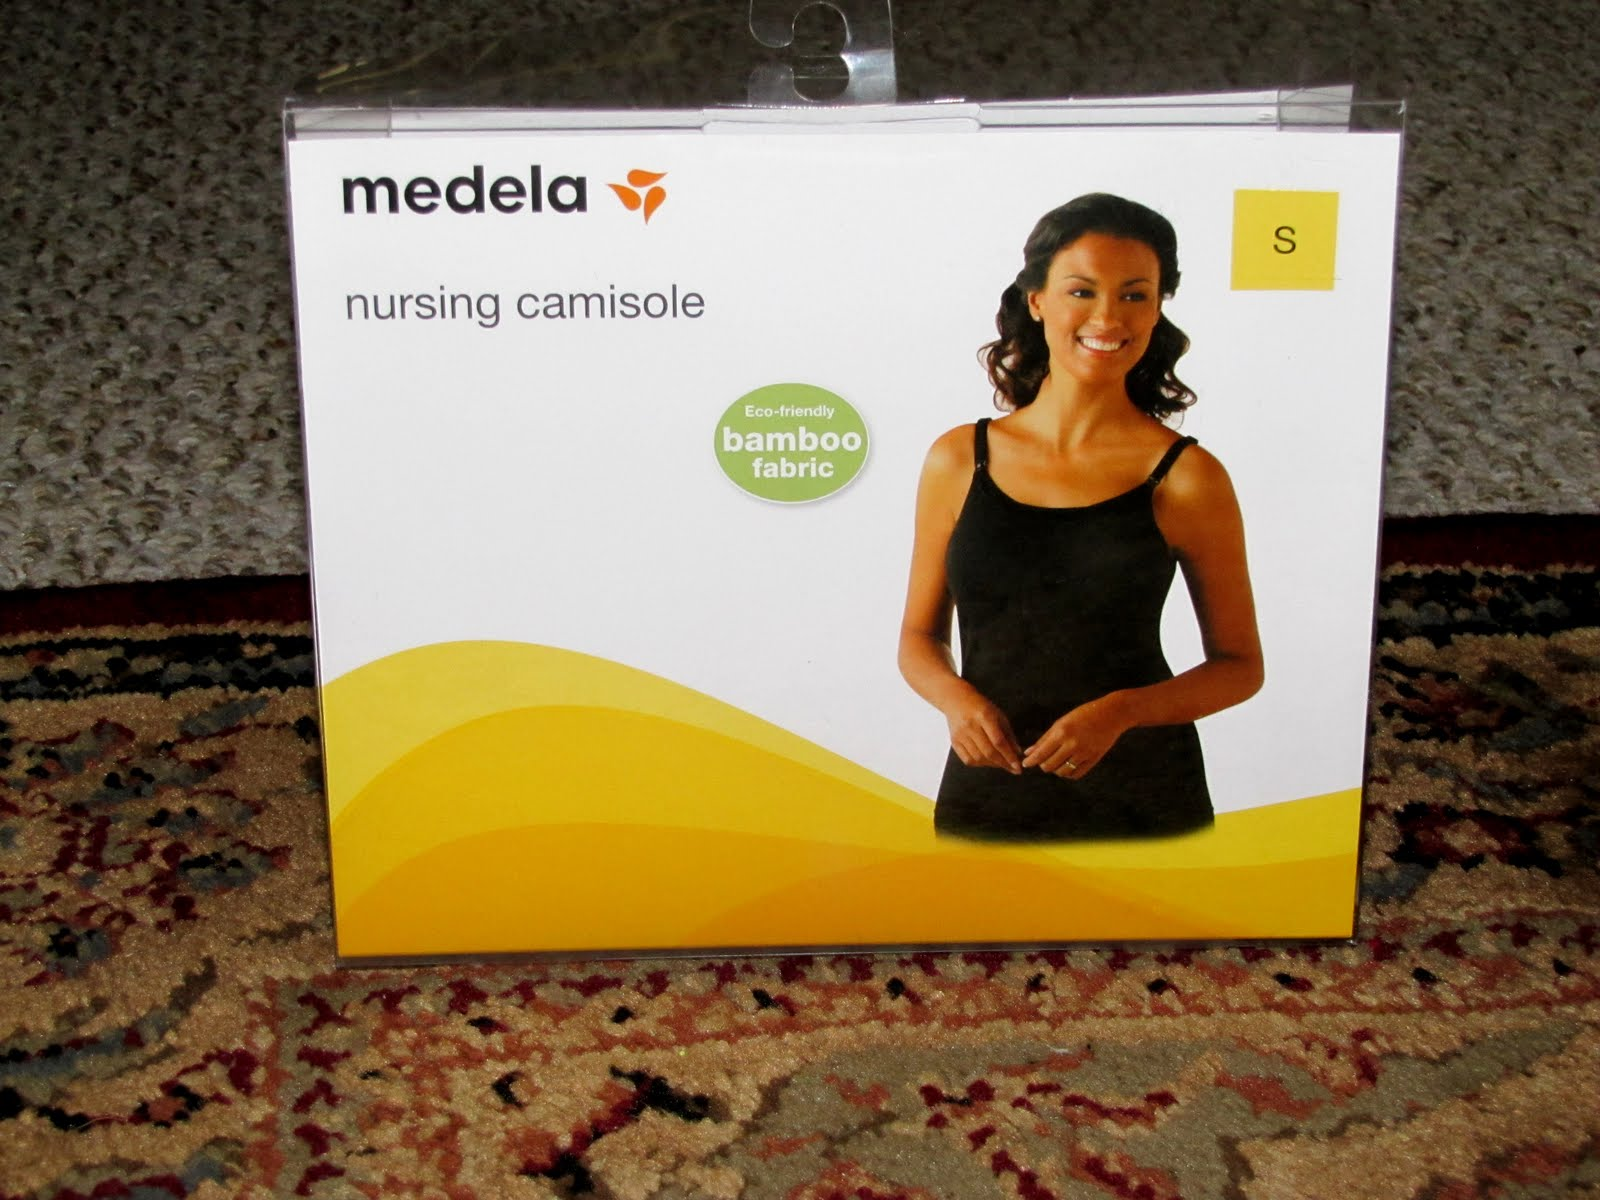 eae02c39fc Medela Nursing Camisole Review and Giveaway!